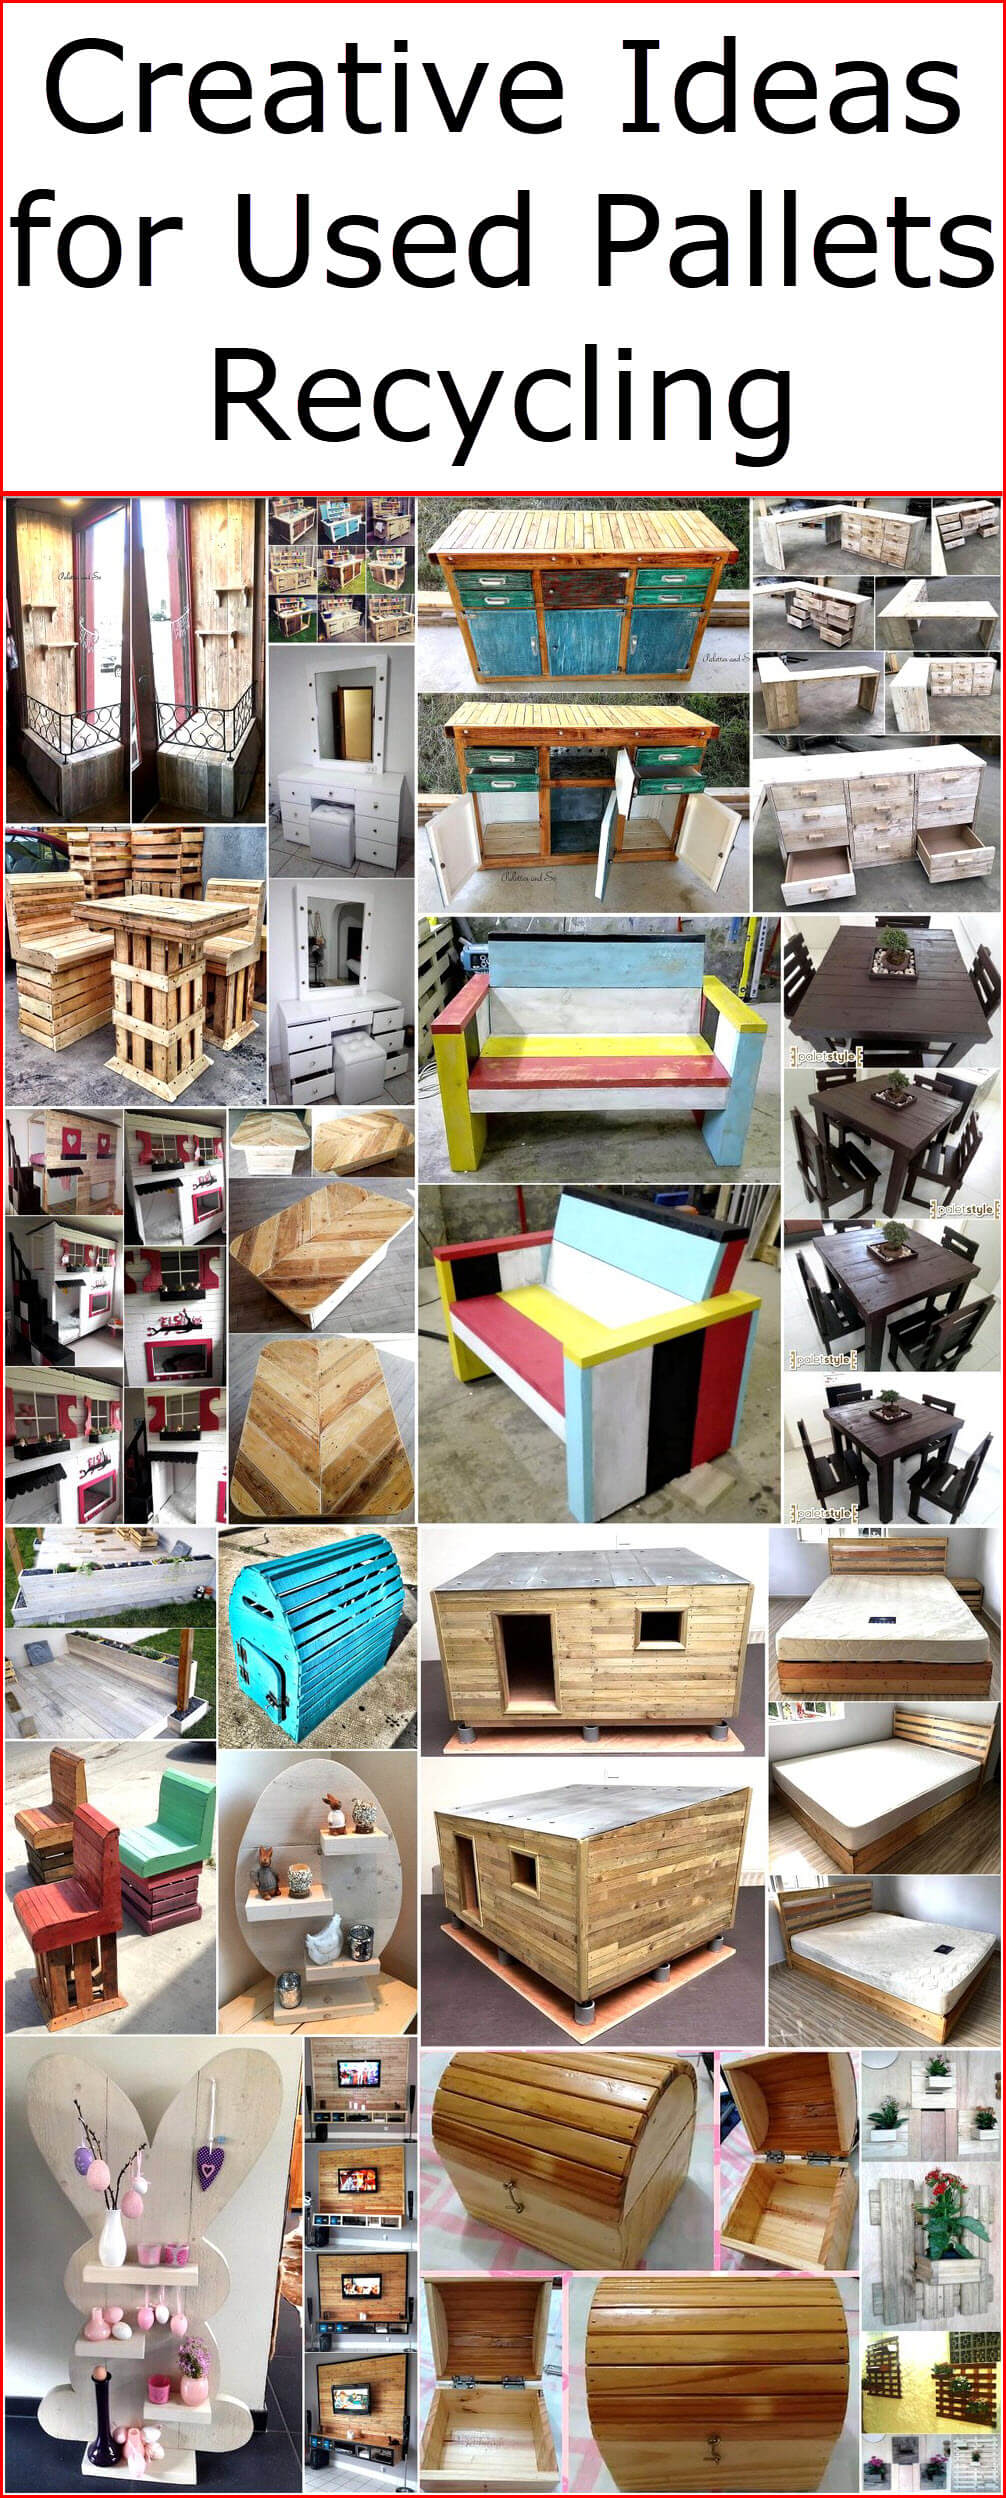 Creative Ideas for Used Pallets Recycling